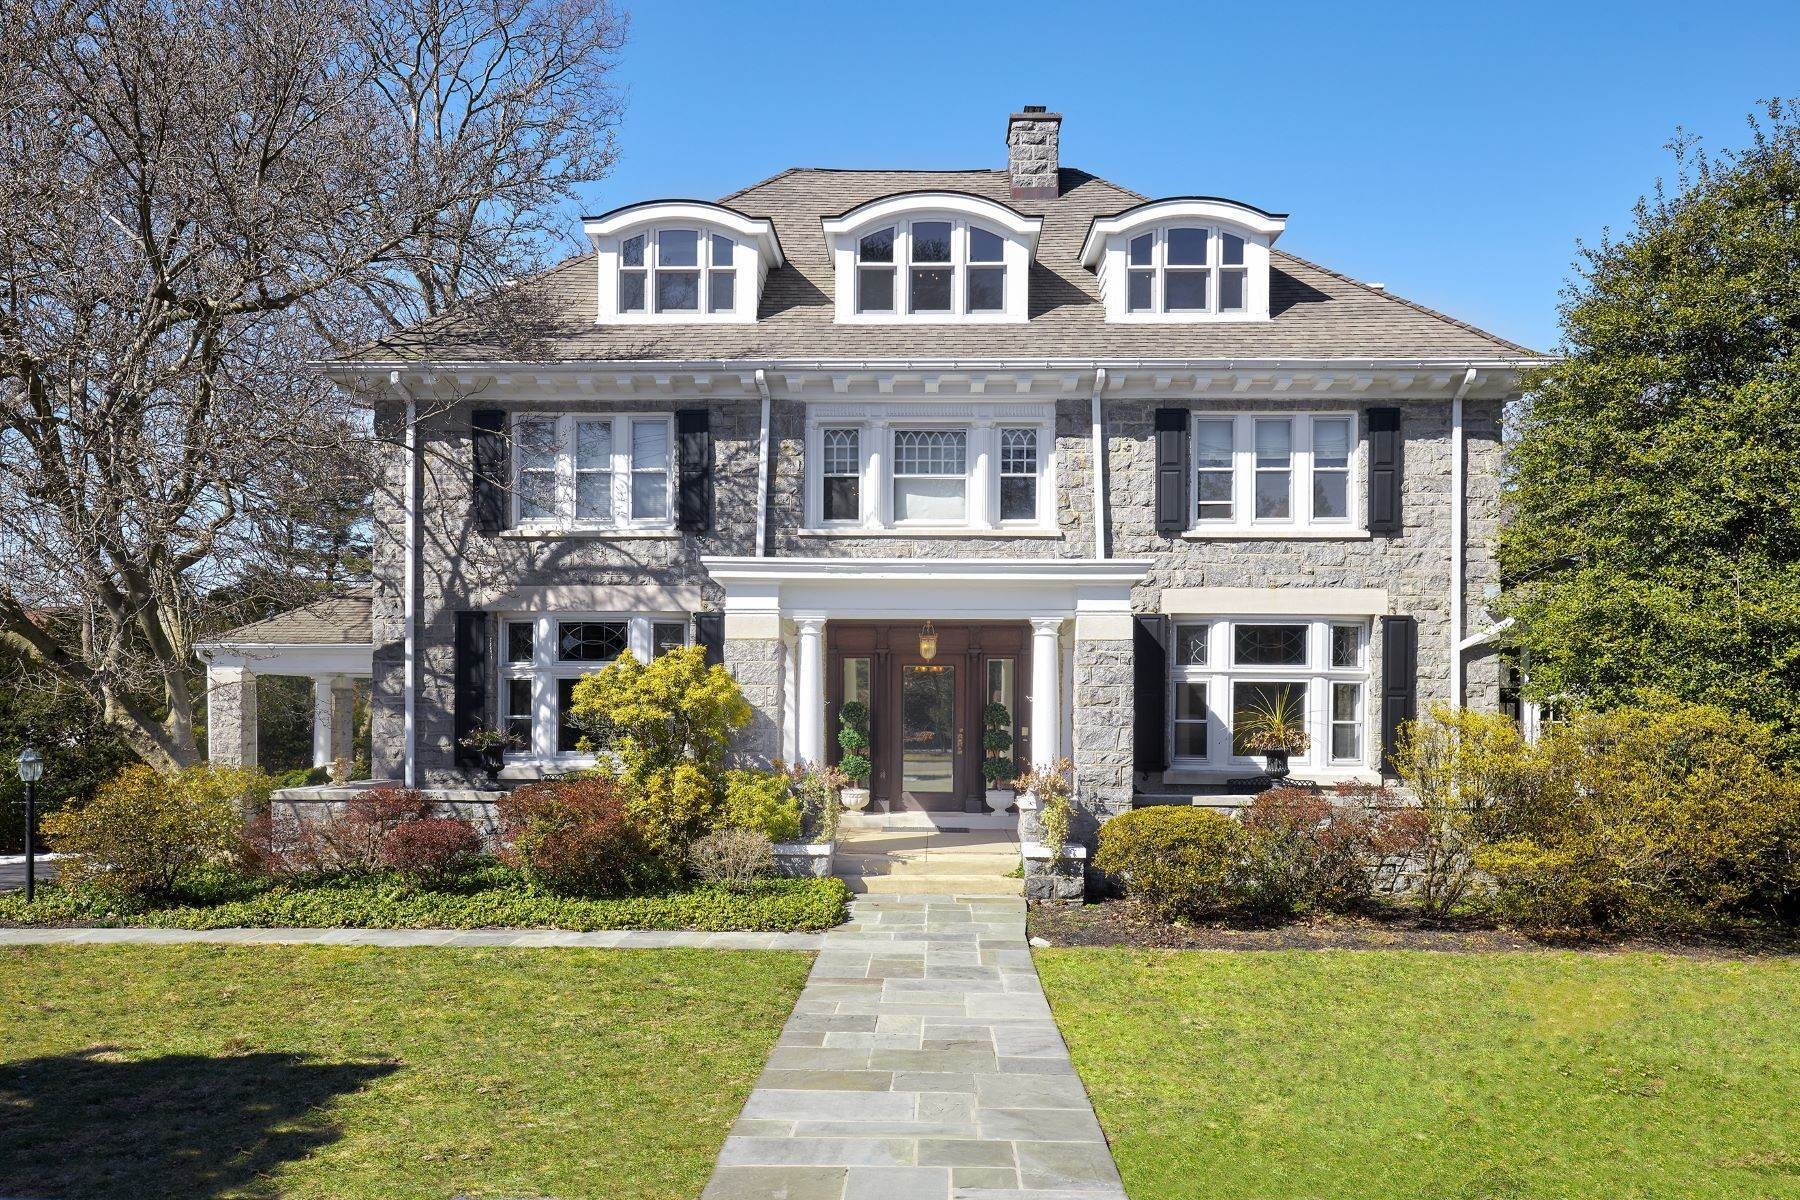 Single Family Homes for Sale at 226 Fishers Rd Bryn Mawr, Pennsylvania 19010 United States